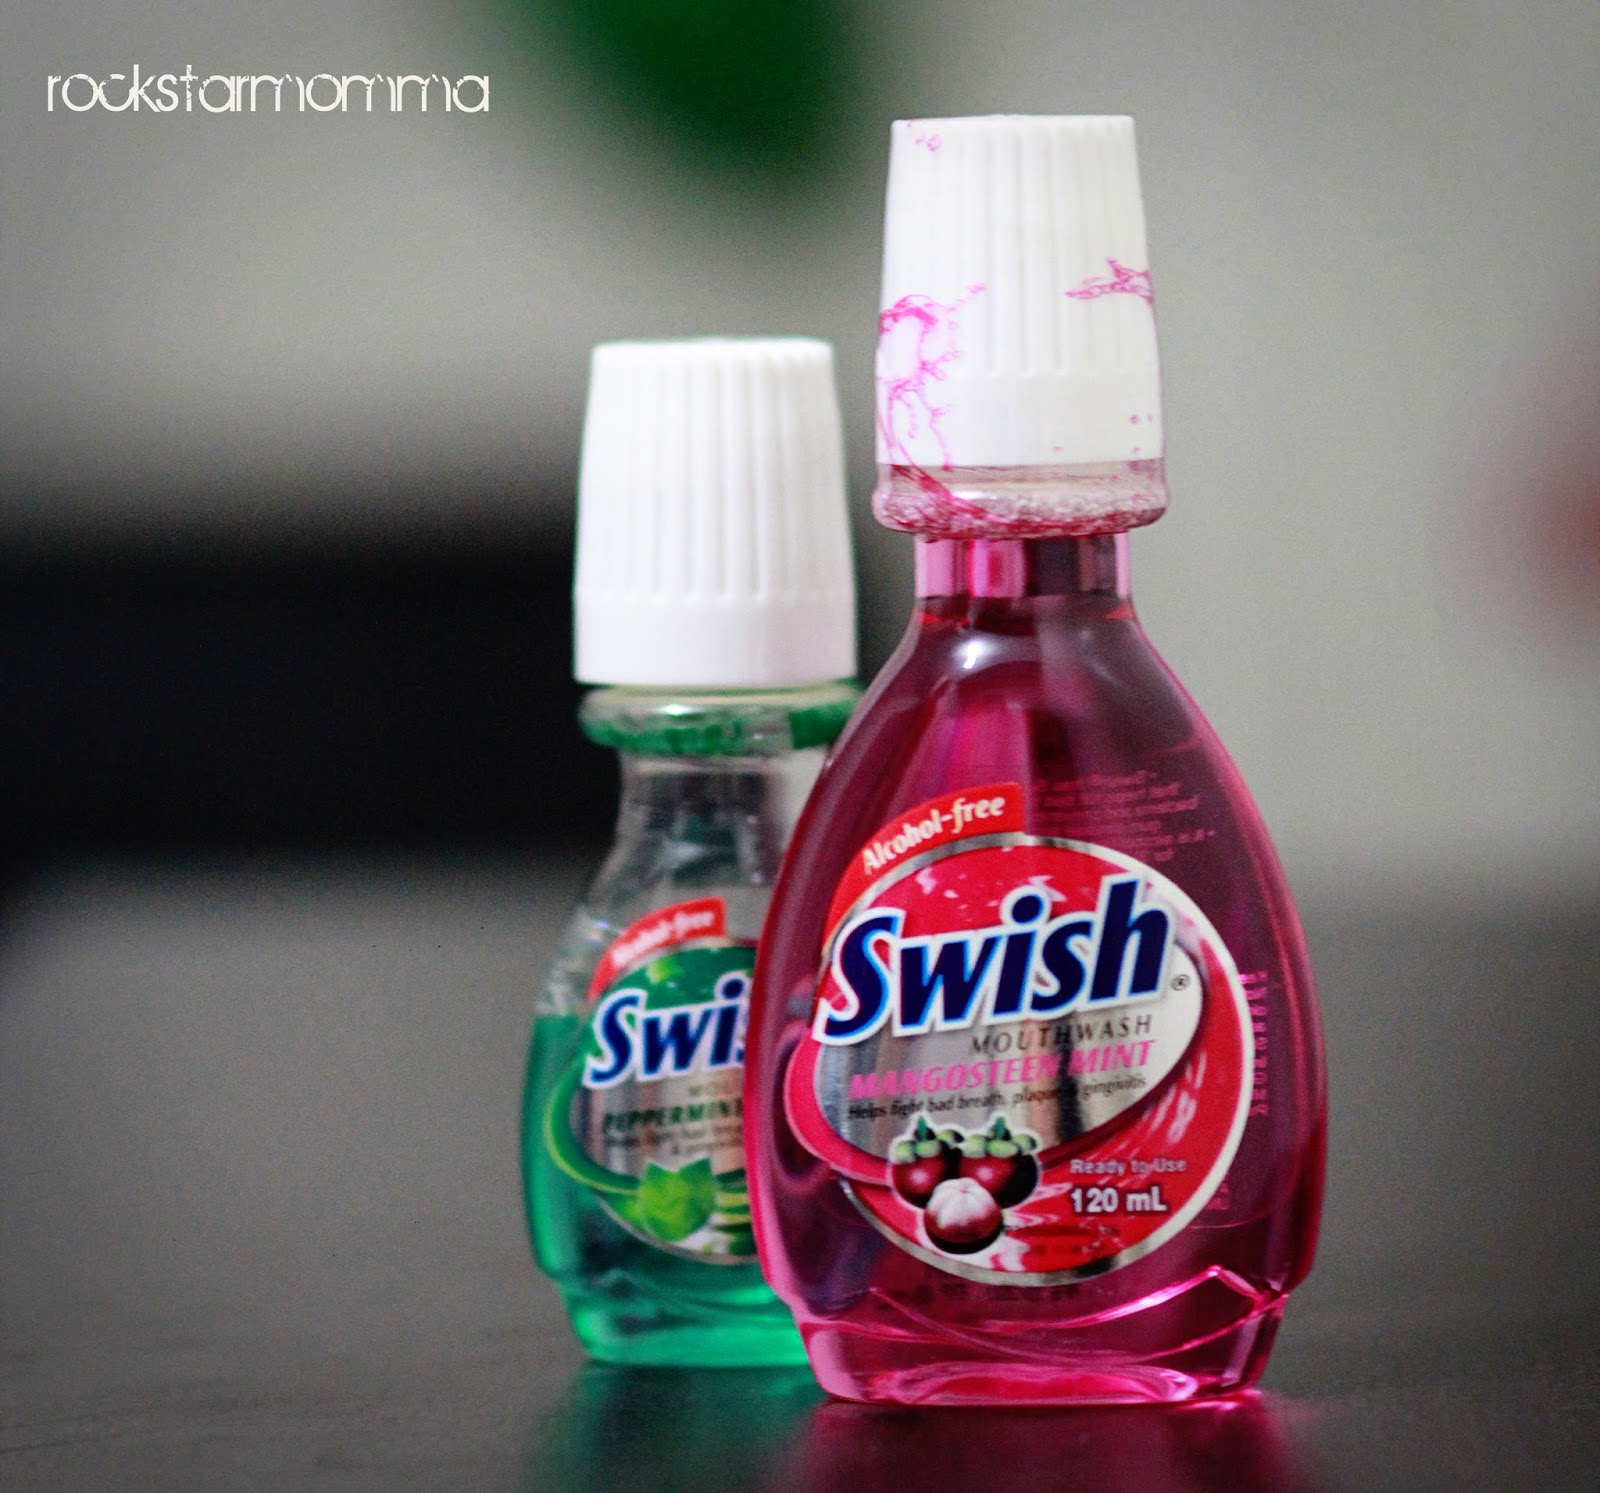 A unique mouthwash experience with swish rockstarmomma - Unusual uses for mouthwash ...